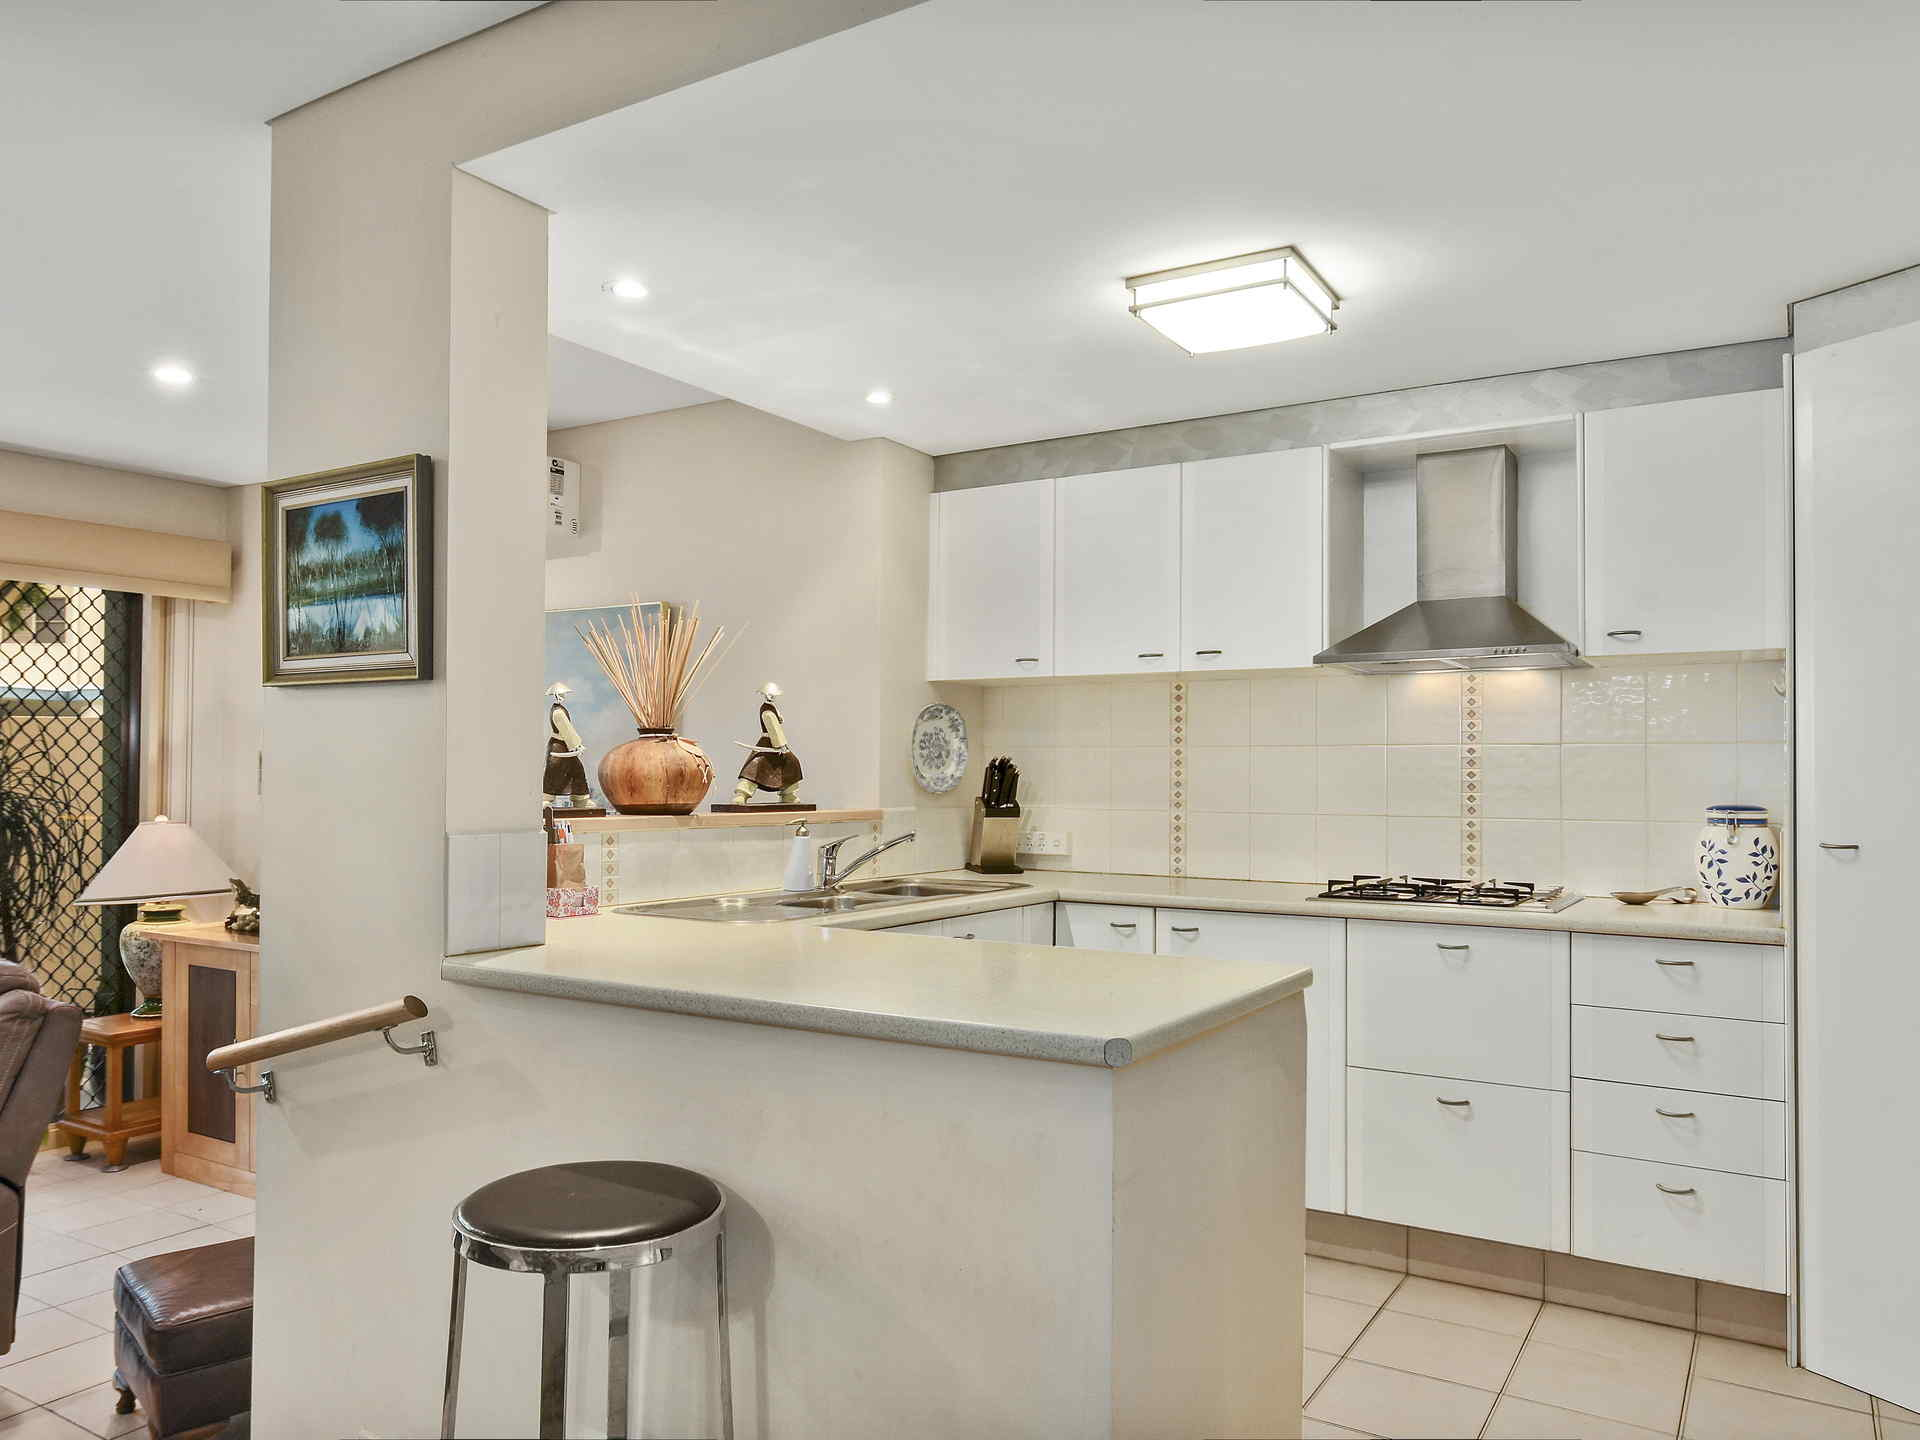 Real Estate   Gold Coast   Chevron Realty   013 Open2view Id494894 2120 Ross Street Royal Pines Benowa